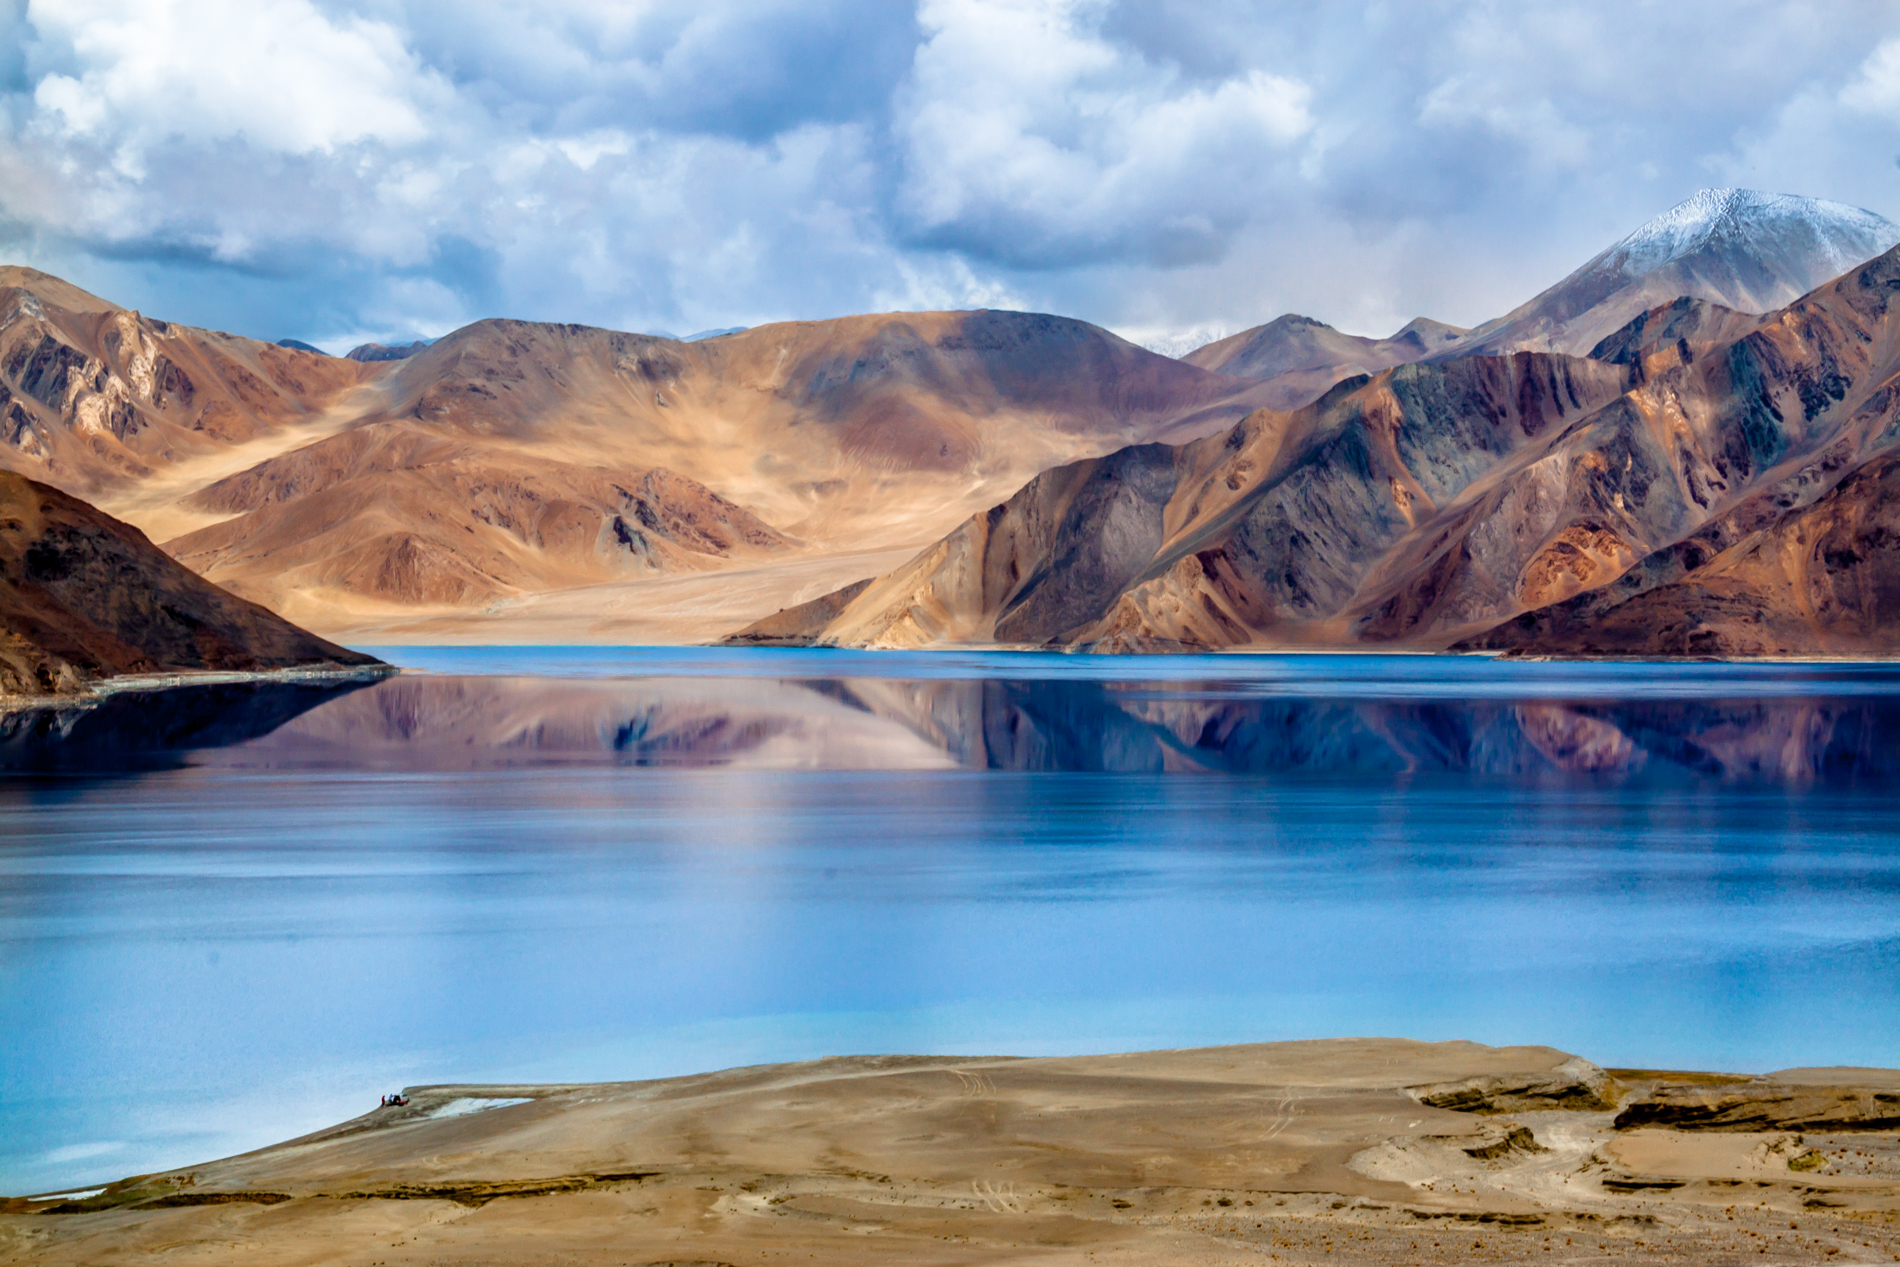 lost in leh bloggers share tips for visiting the unique district